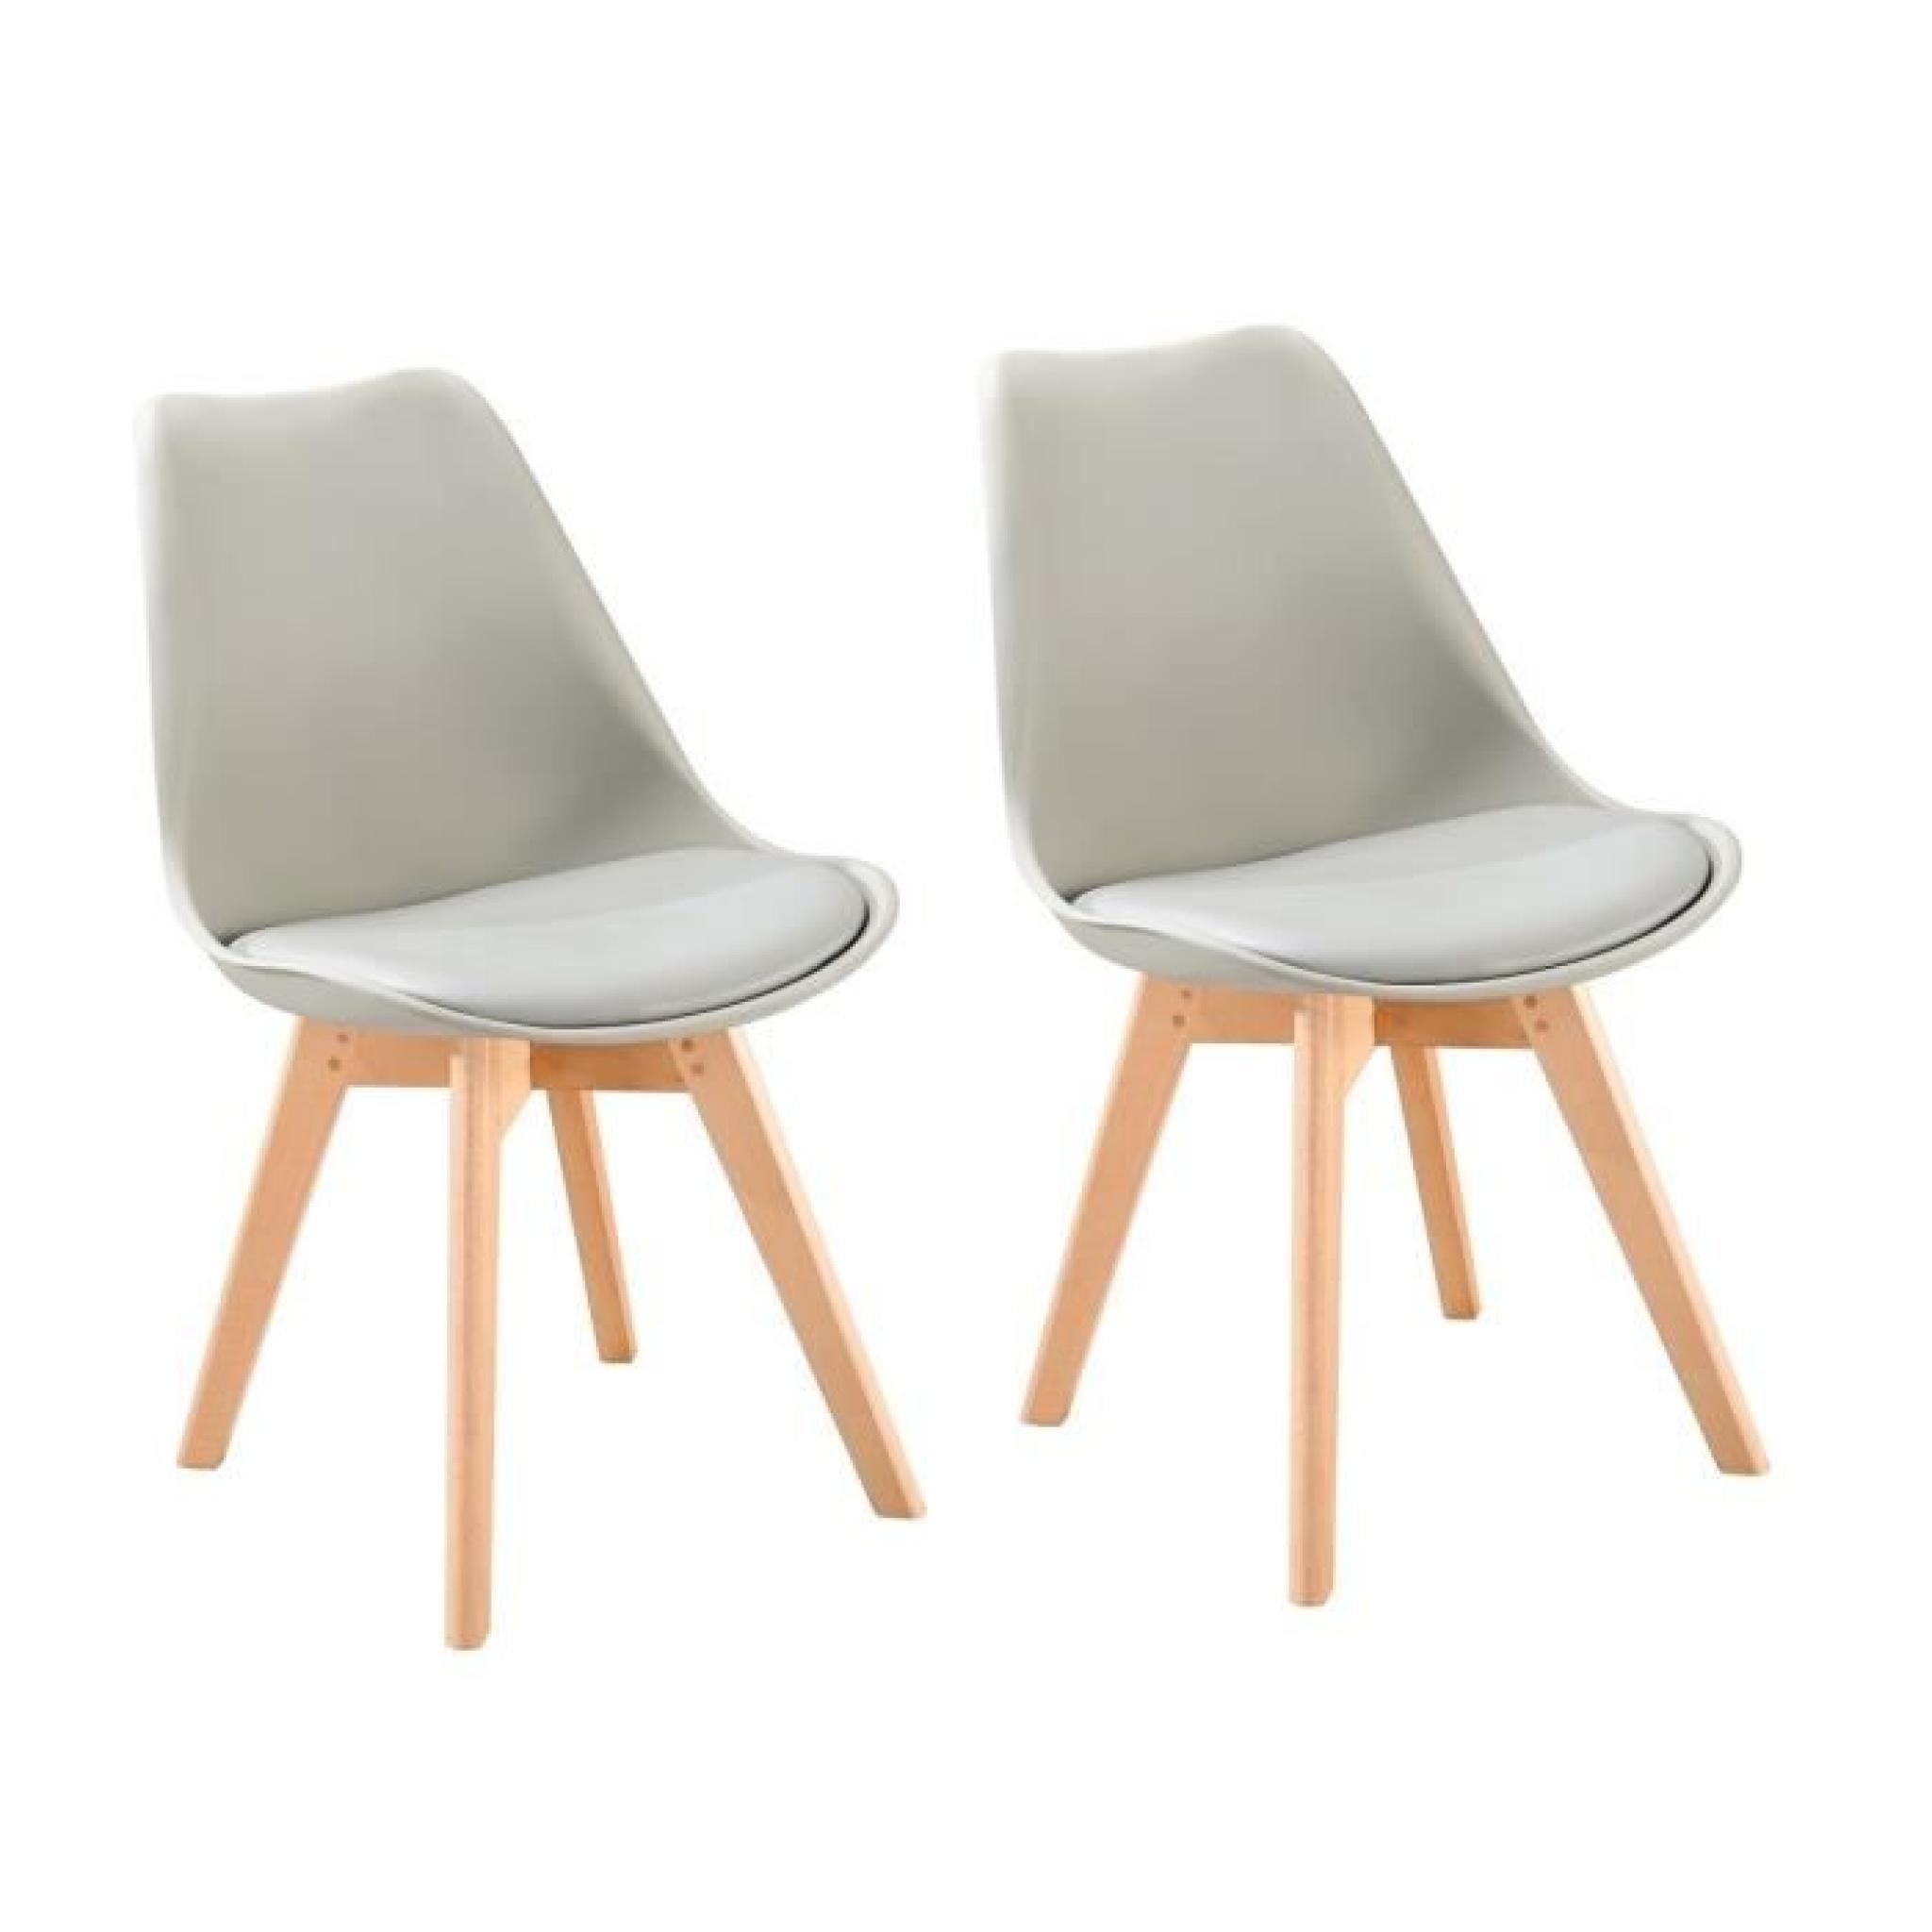 Bjorn lot de 2 chaises scandinaves de salle manger for Chaise scandinave